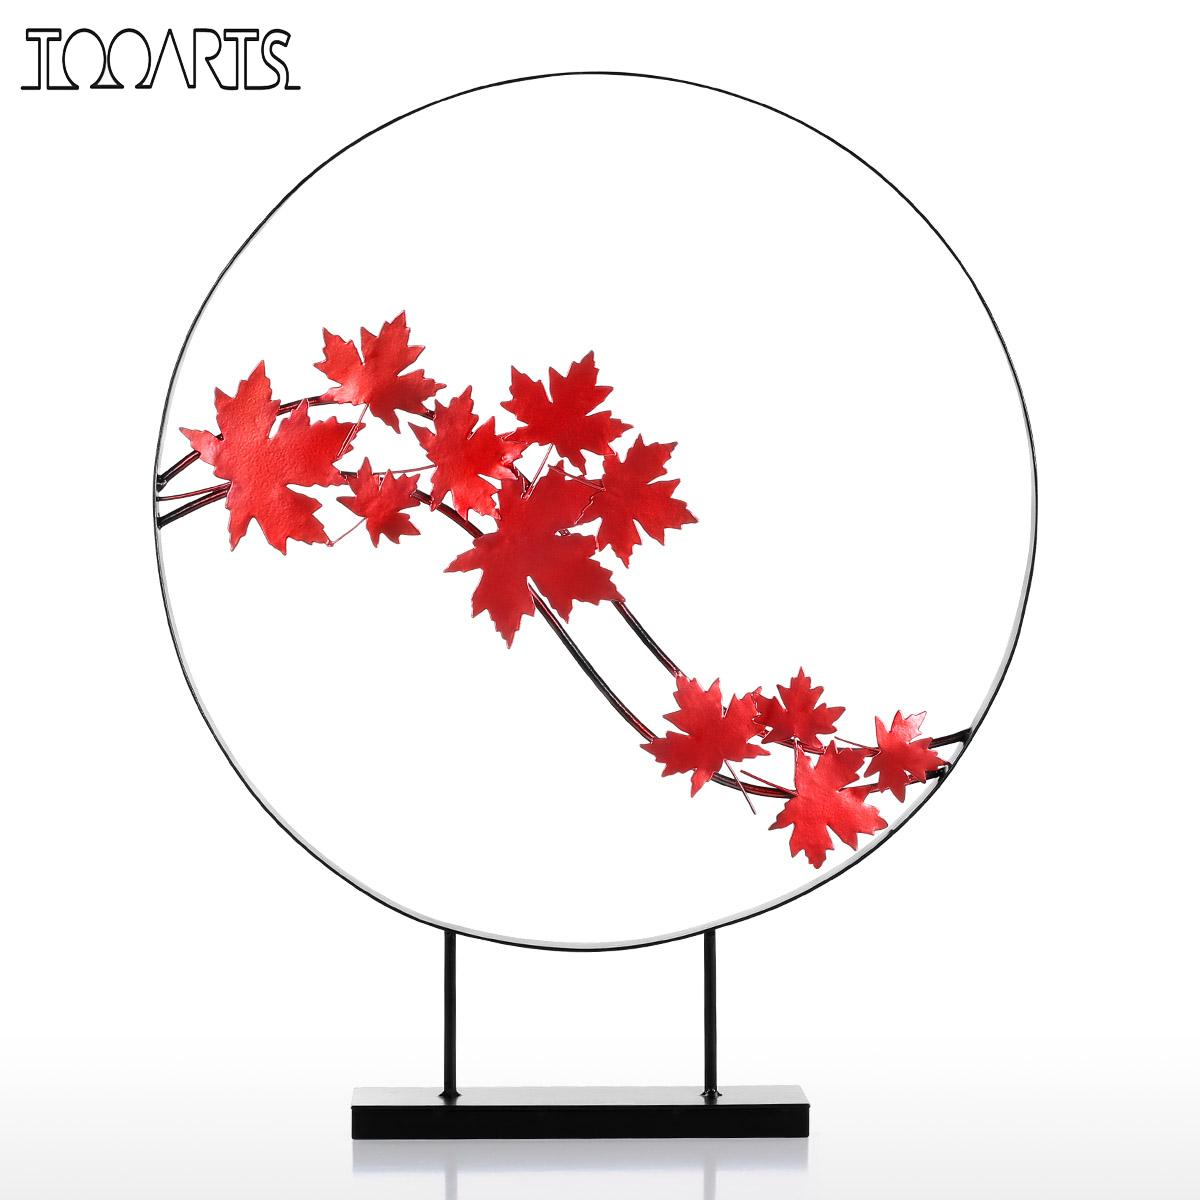 Tooarts Tomfeel Maple Leaf Ornament Iron Sculpture Abstract Modern Sculpture Iron Circle Home Decor Modern Concise Artwork